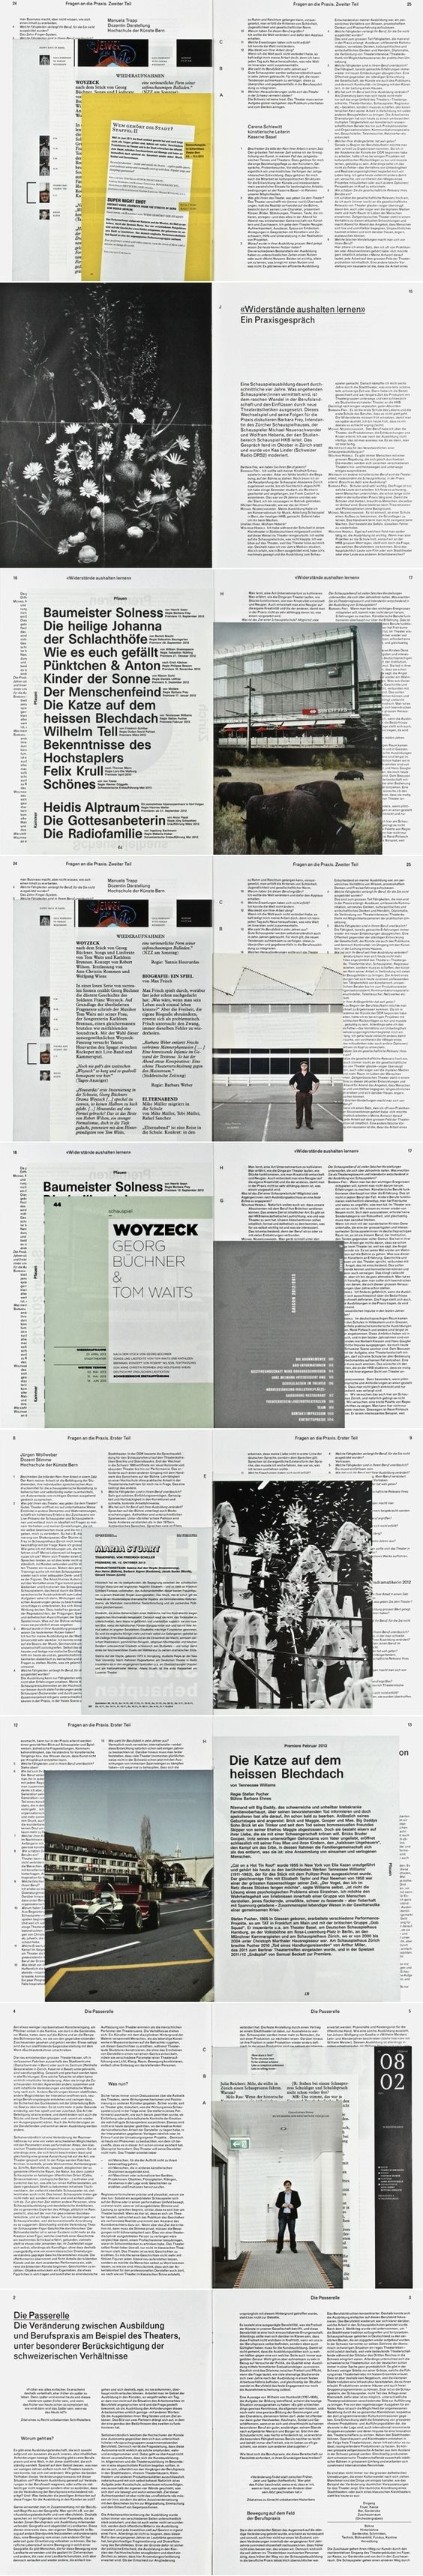 HKB – Jahrbuch 2012 | P A P E R | Pinterest | Editorial, Layouts and ...